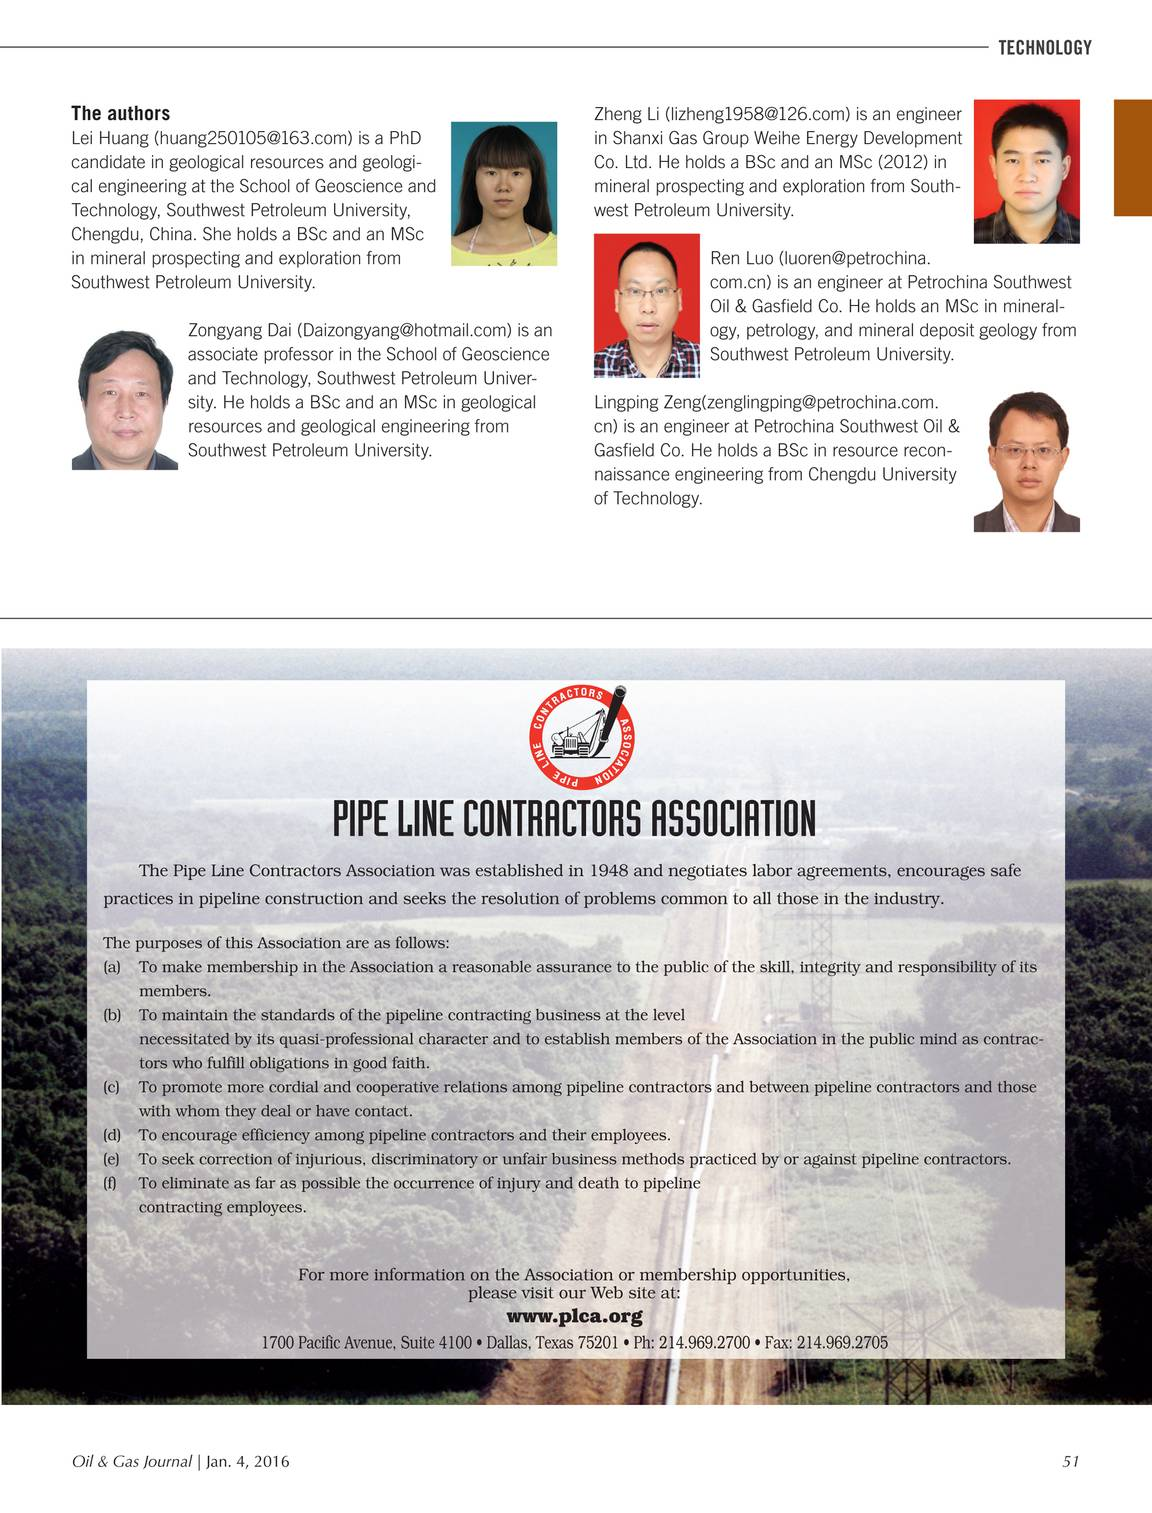 Oil & Gas Journal - January 04, 2016 - page 51